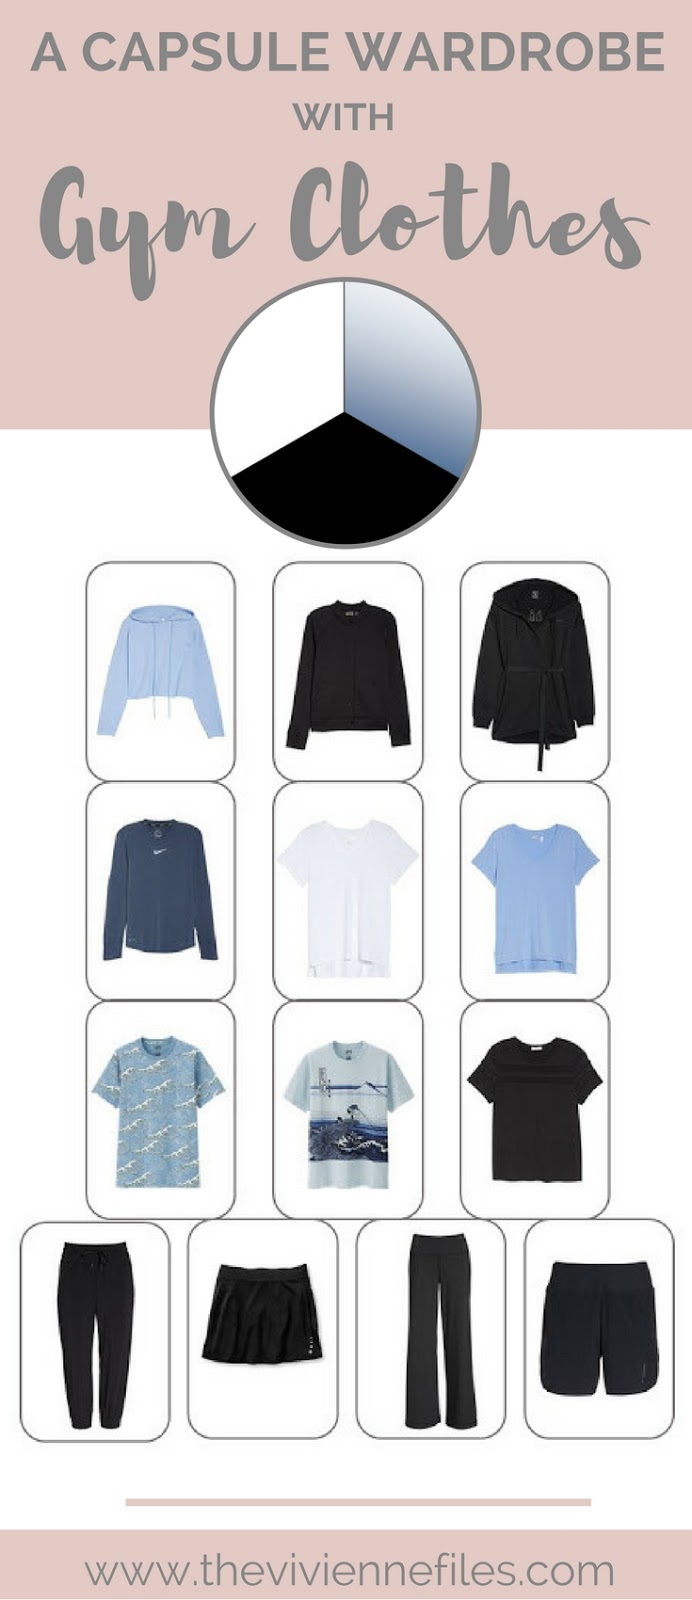 Can I Make A Capsule Wardrobe With My Gym Clothes?